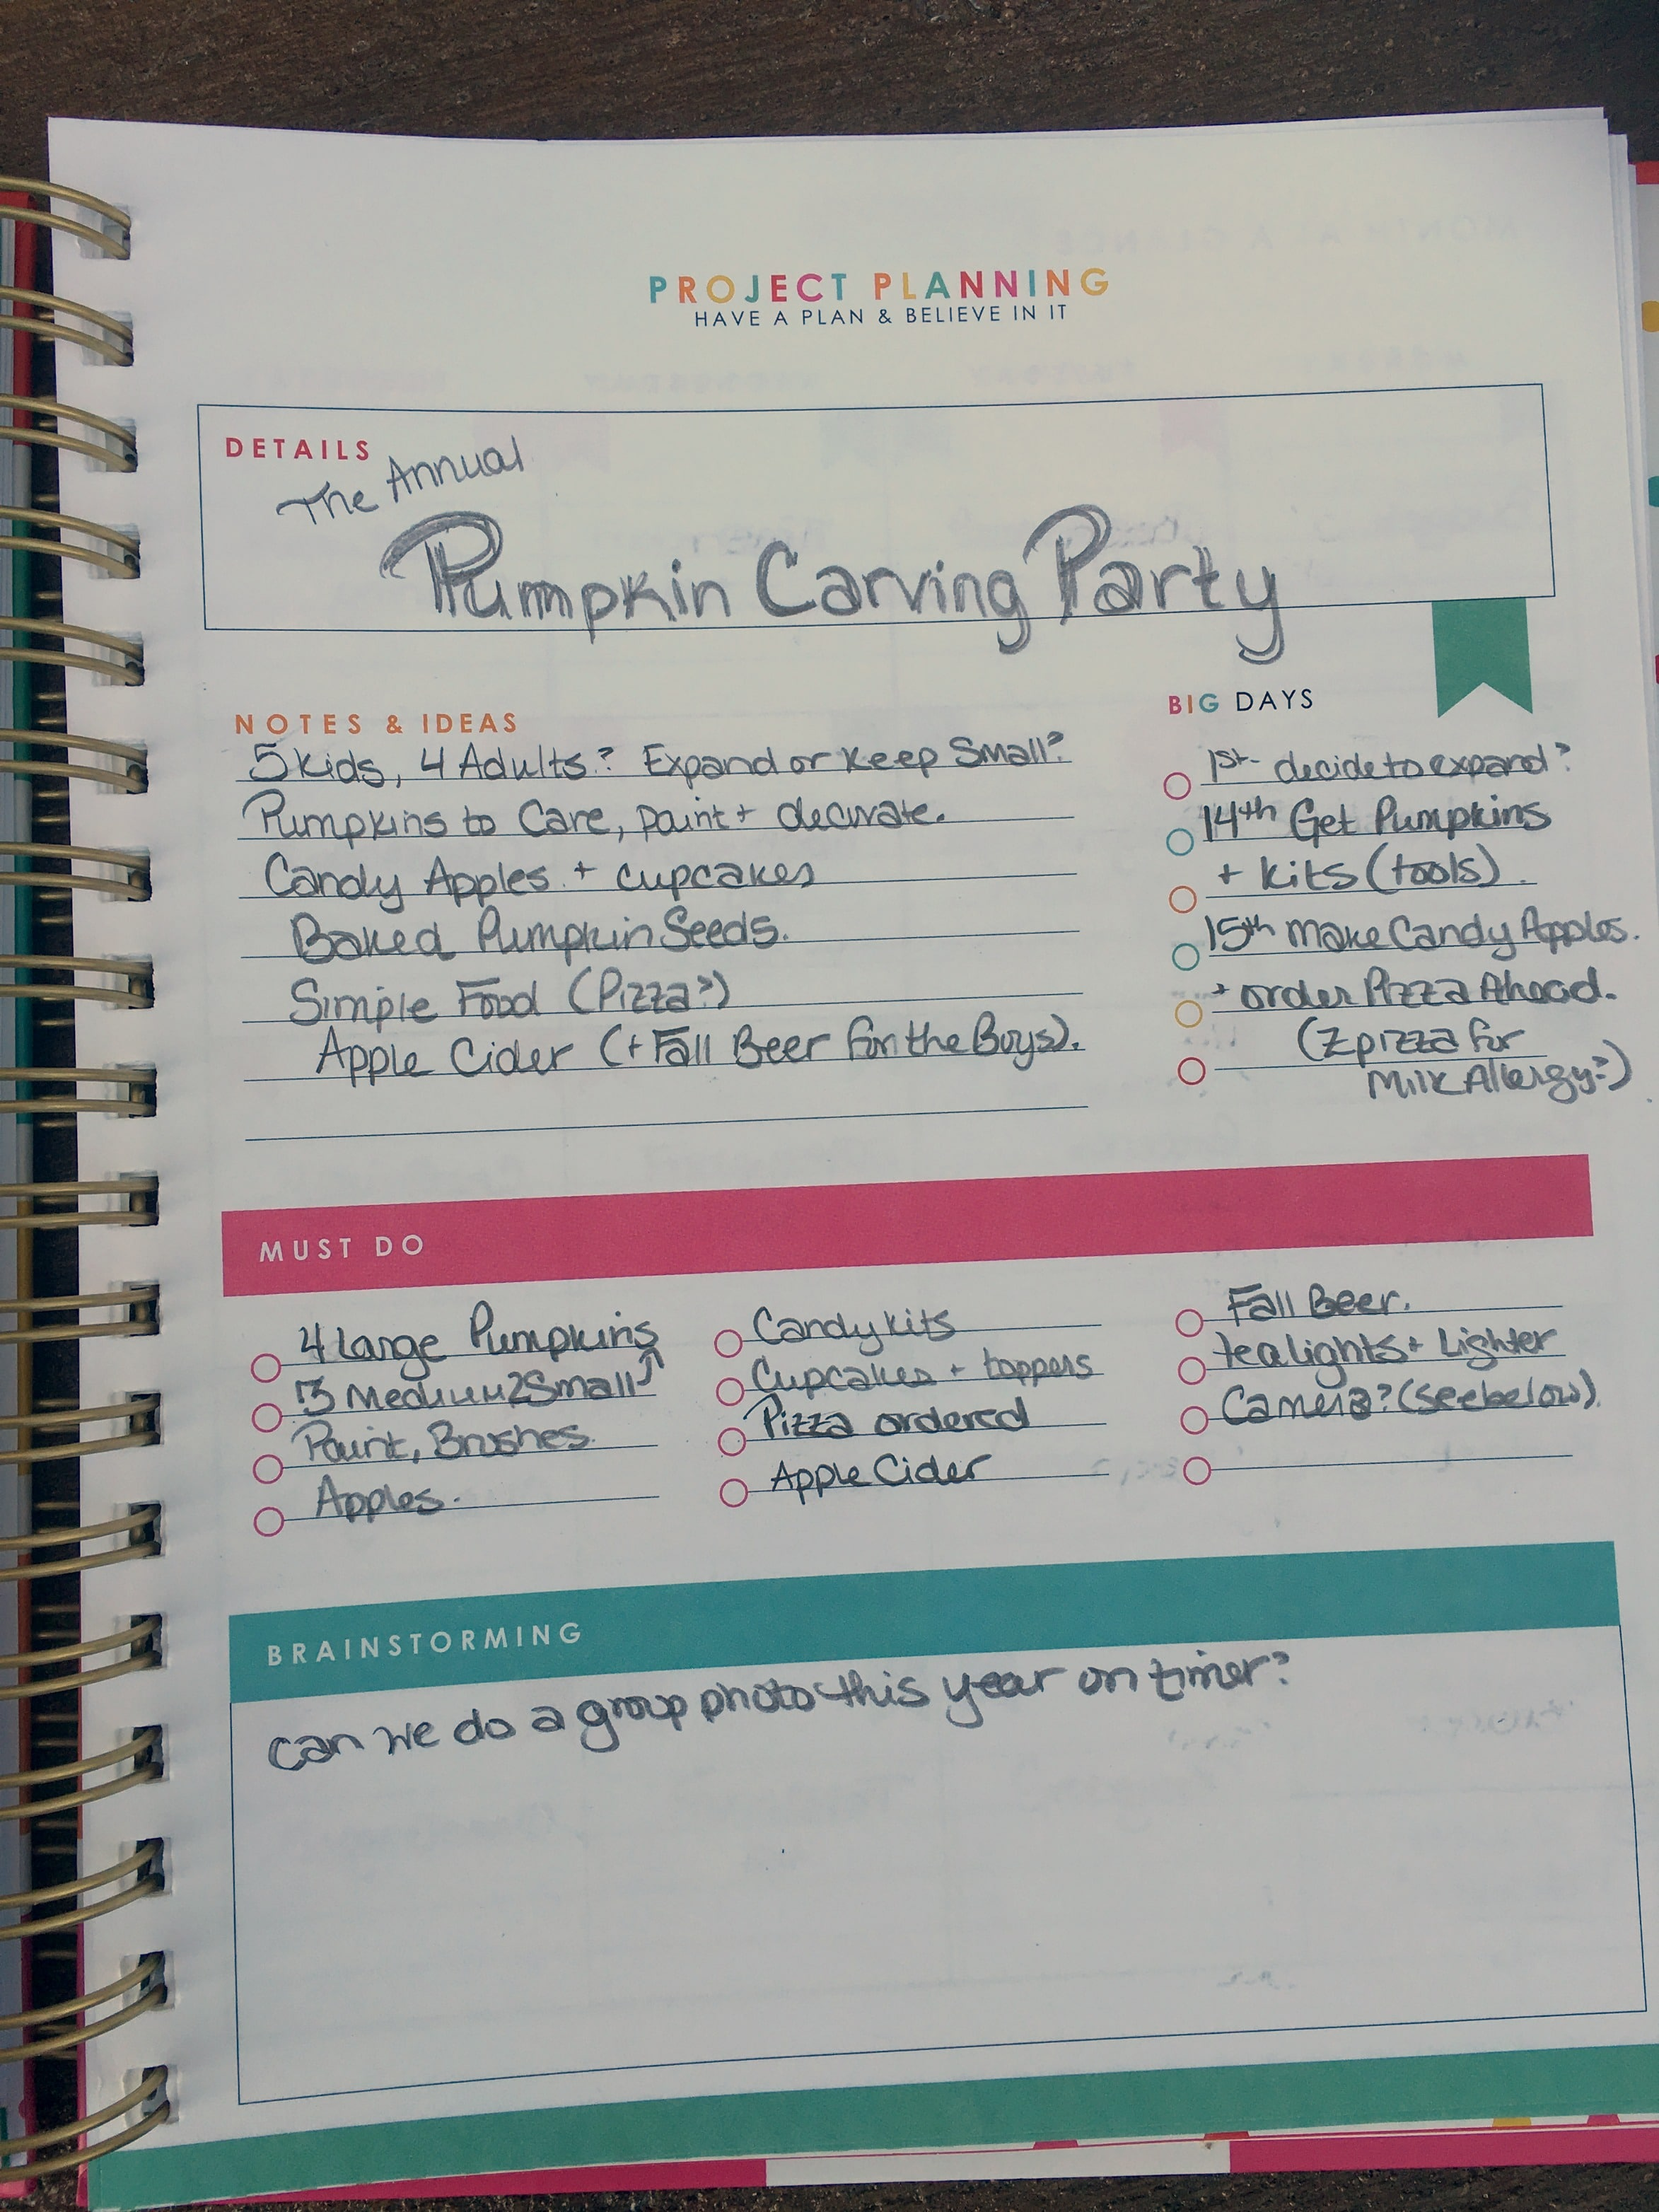 The Living Well Planner has the perfect sections for project planning!